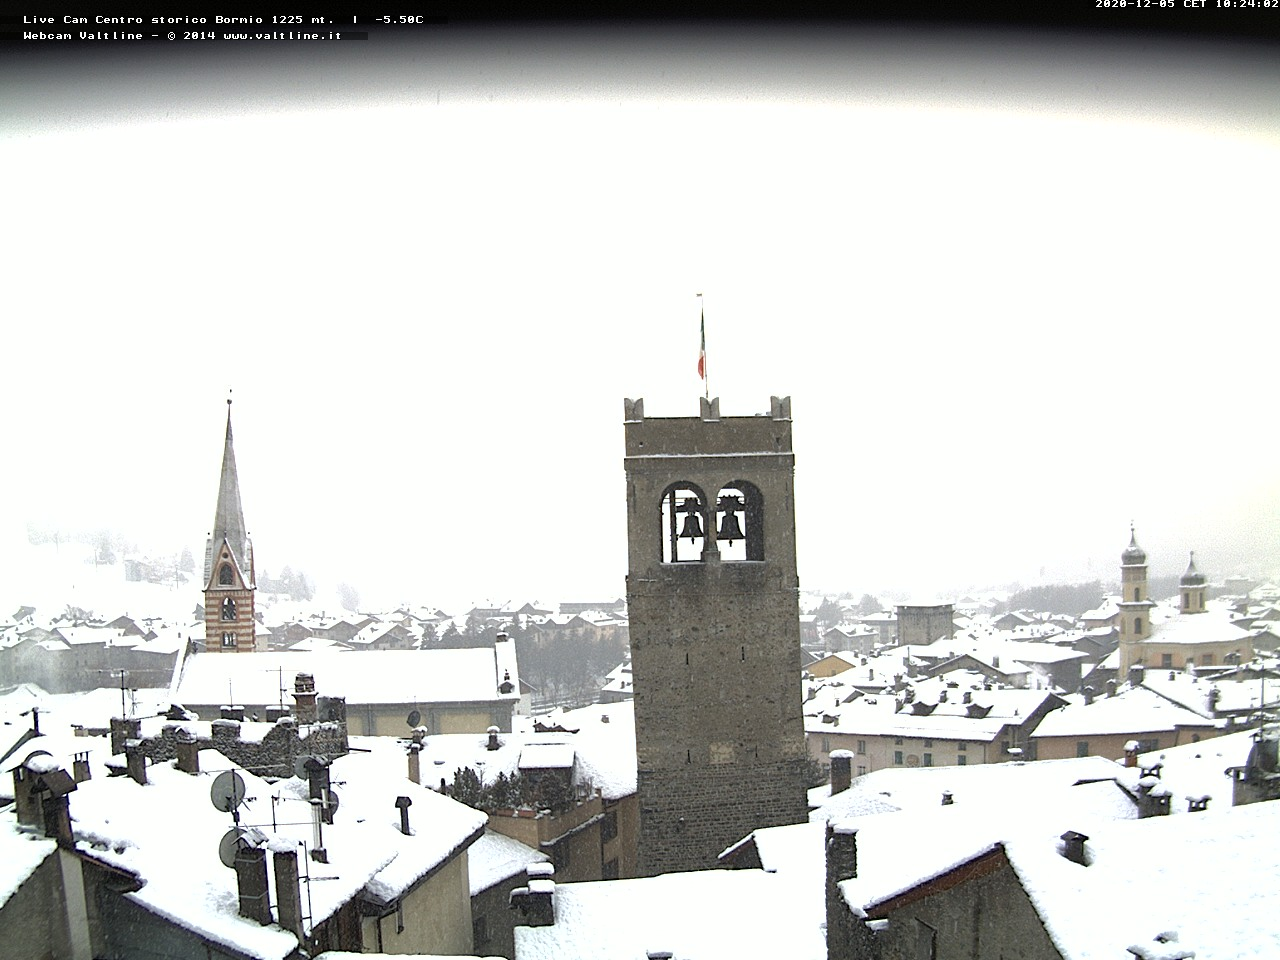 Webcam panoramica sul centro abitato di Bormio